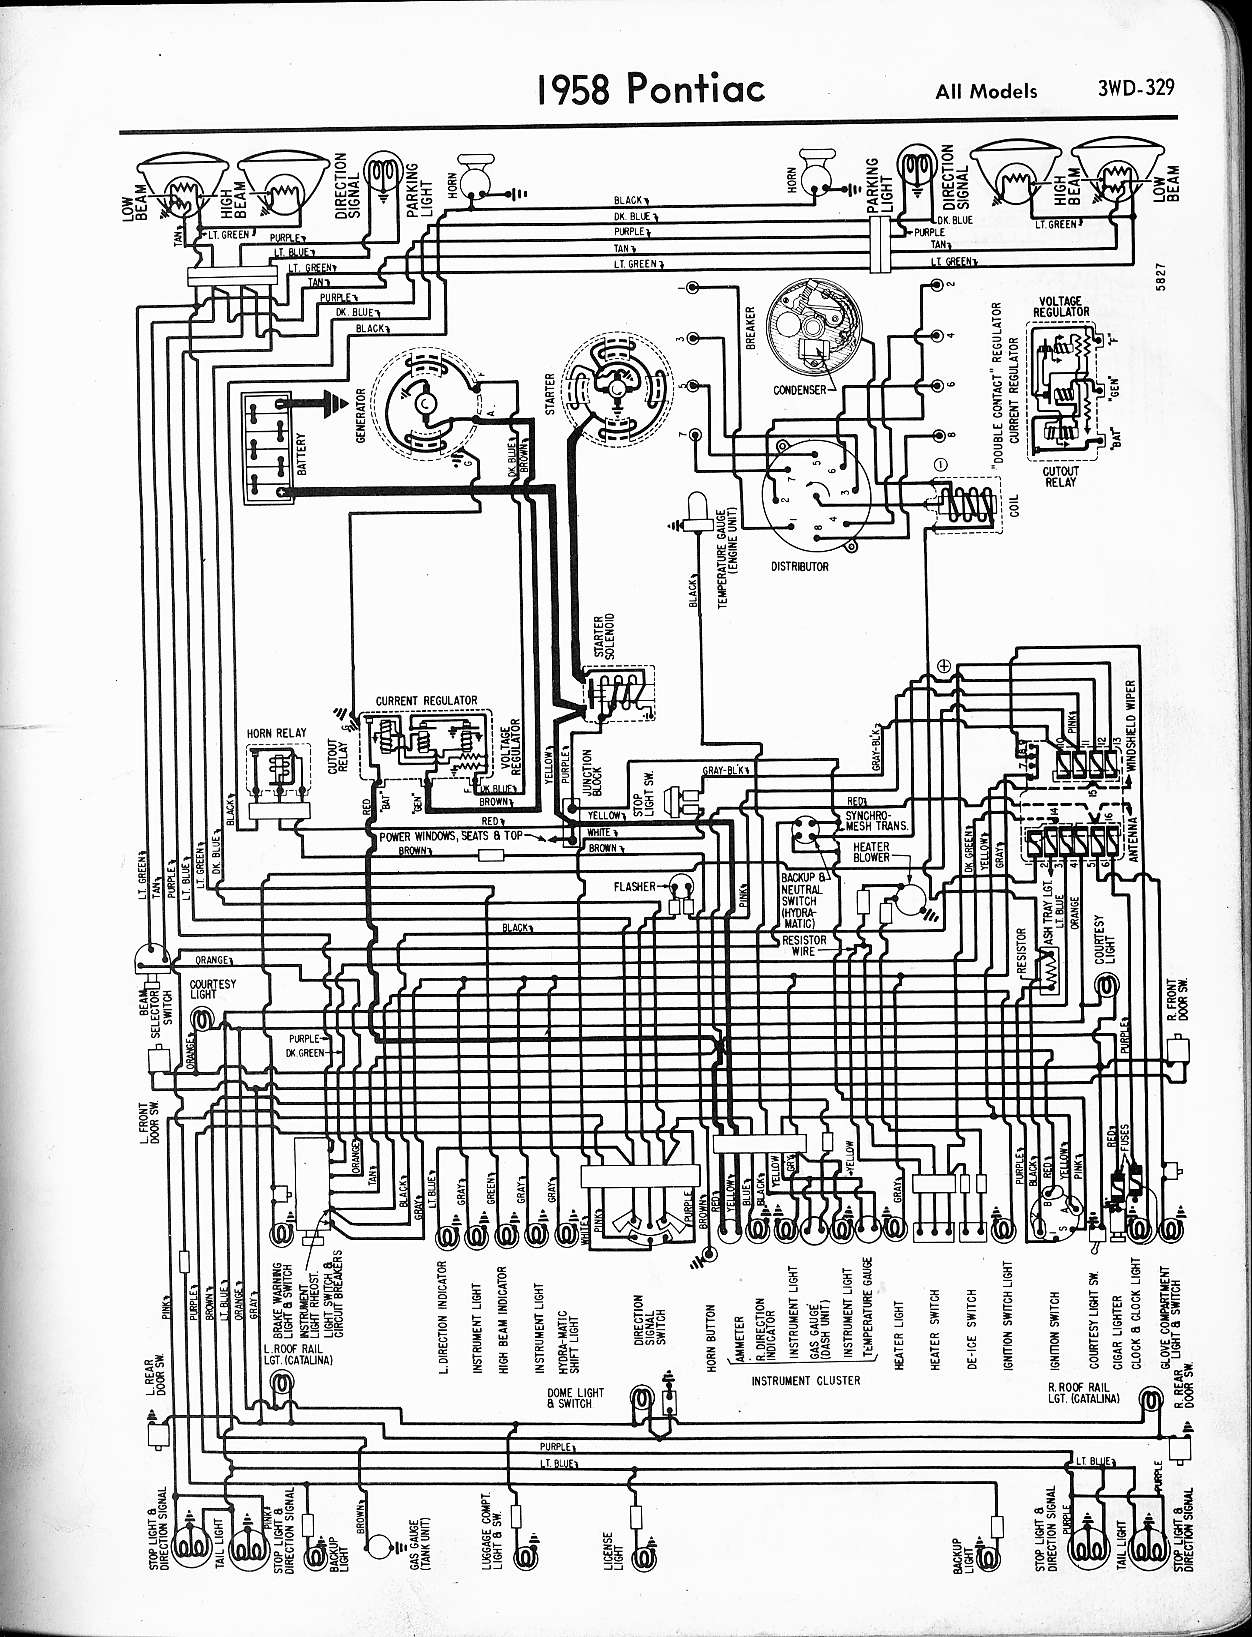 1965 lemans wiring diagram 1971 pontiac lemans wiring diagram 69 pontiac lemans wiring diagram | wiring library